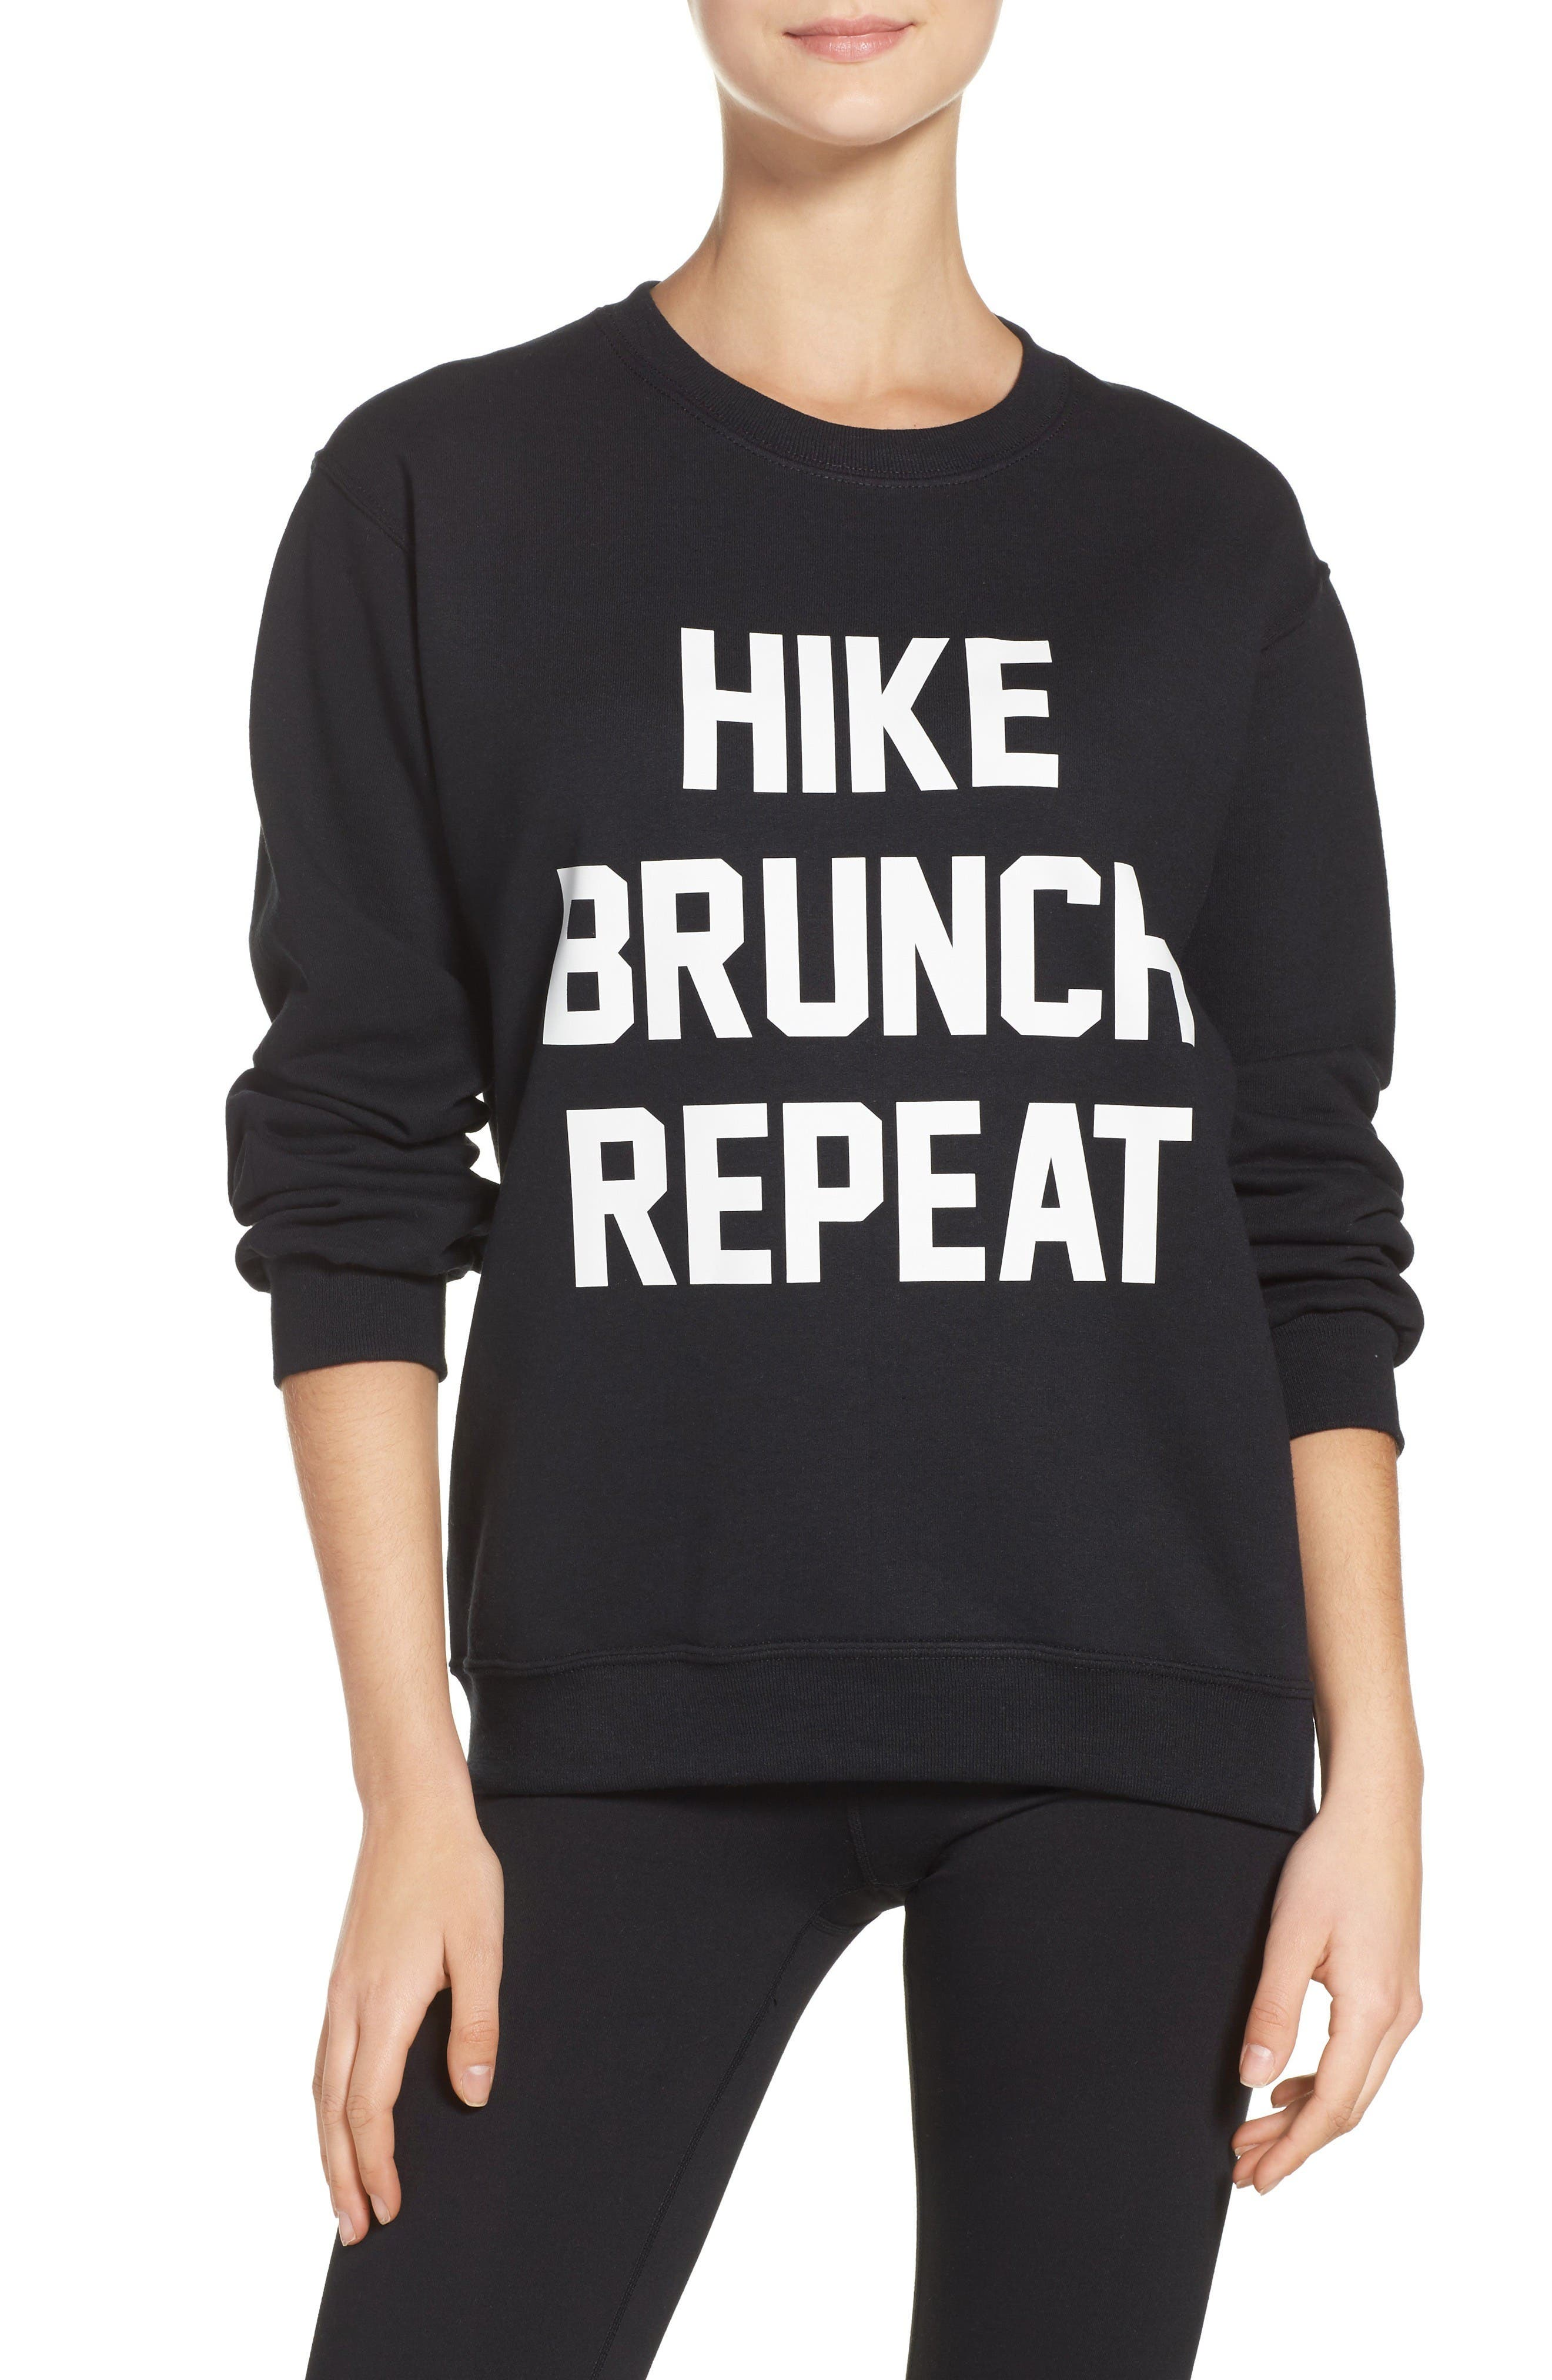 Private Party Hike Brunch Repeat Sweatshirt